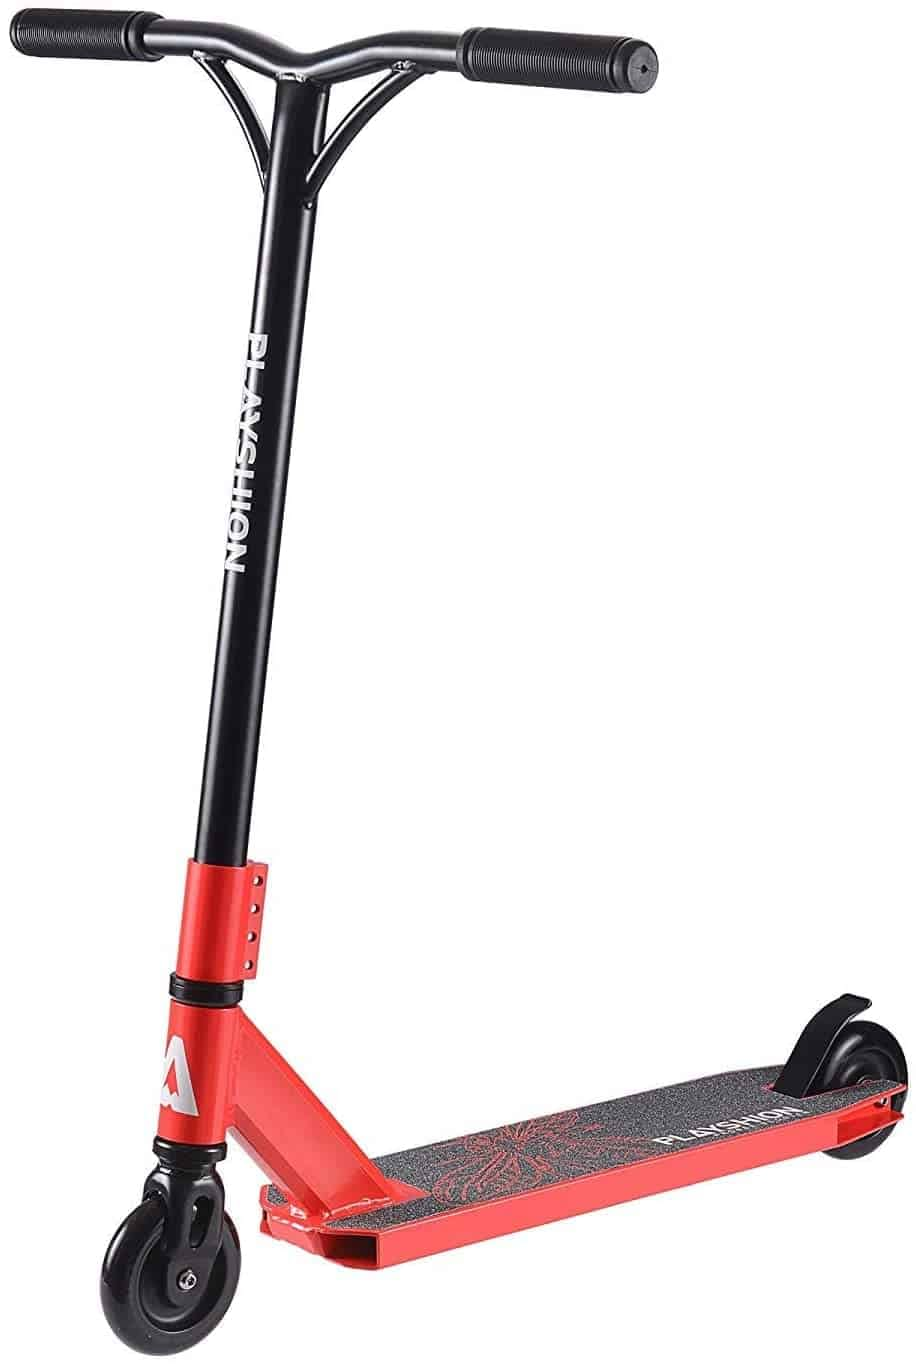 What are the Best Stunt Scooters Reviews For Beginners, Kids, And Adults In 2021? 9